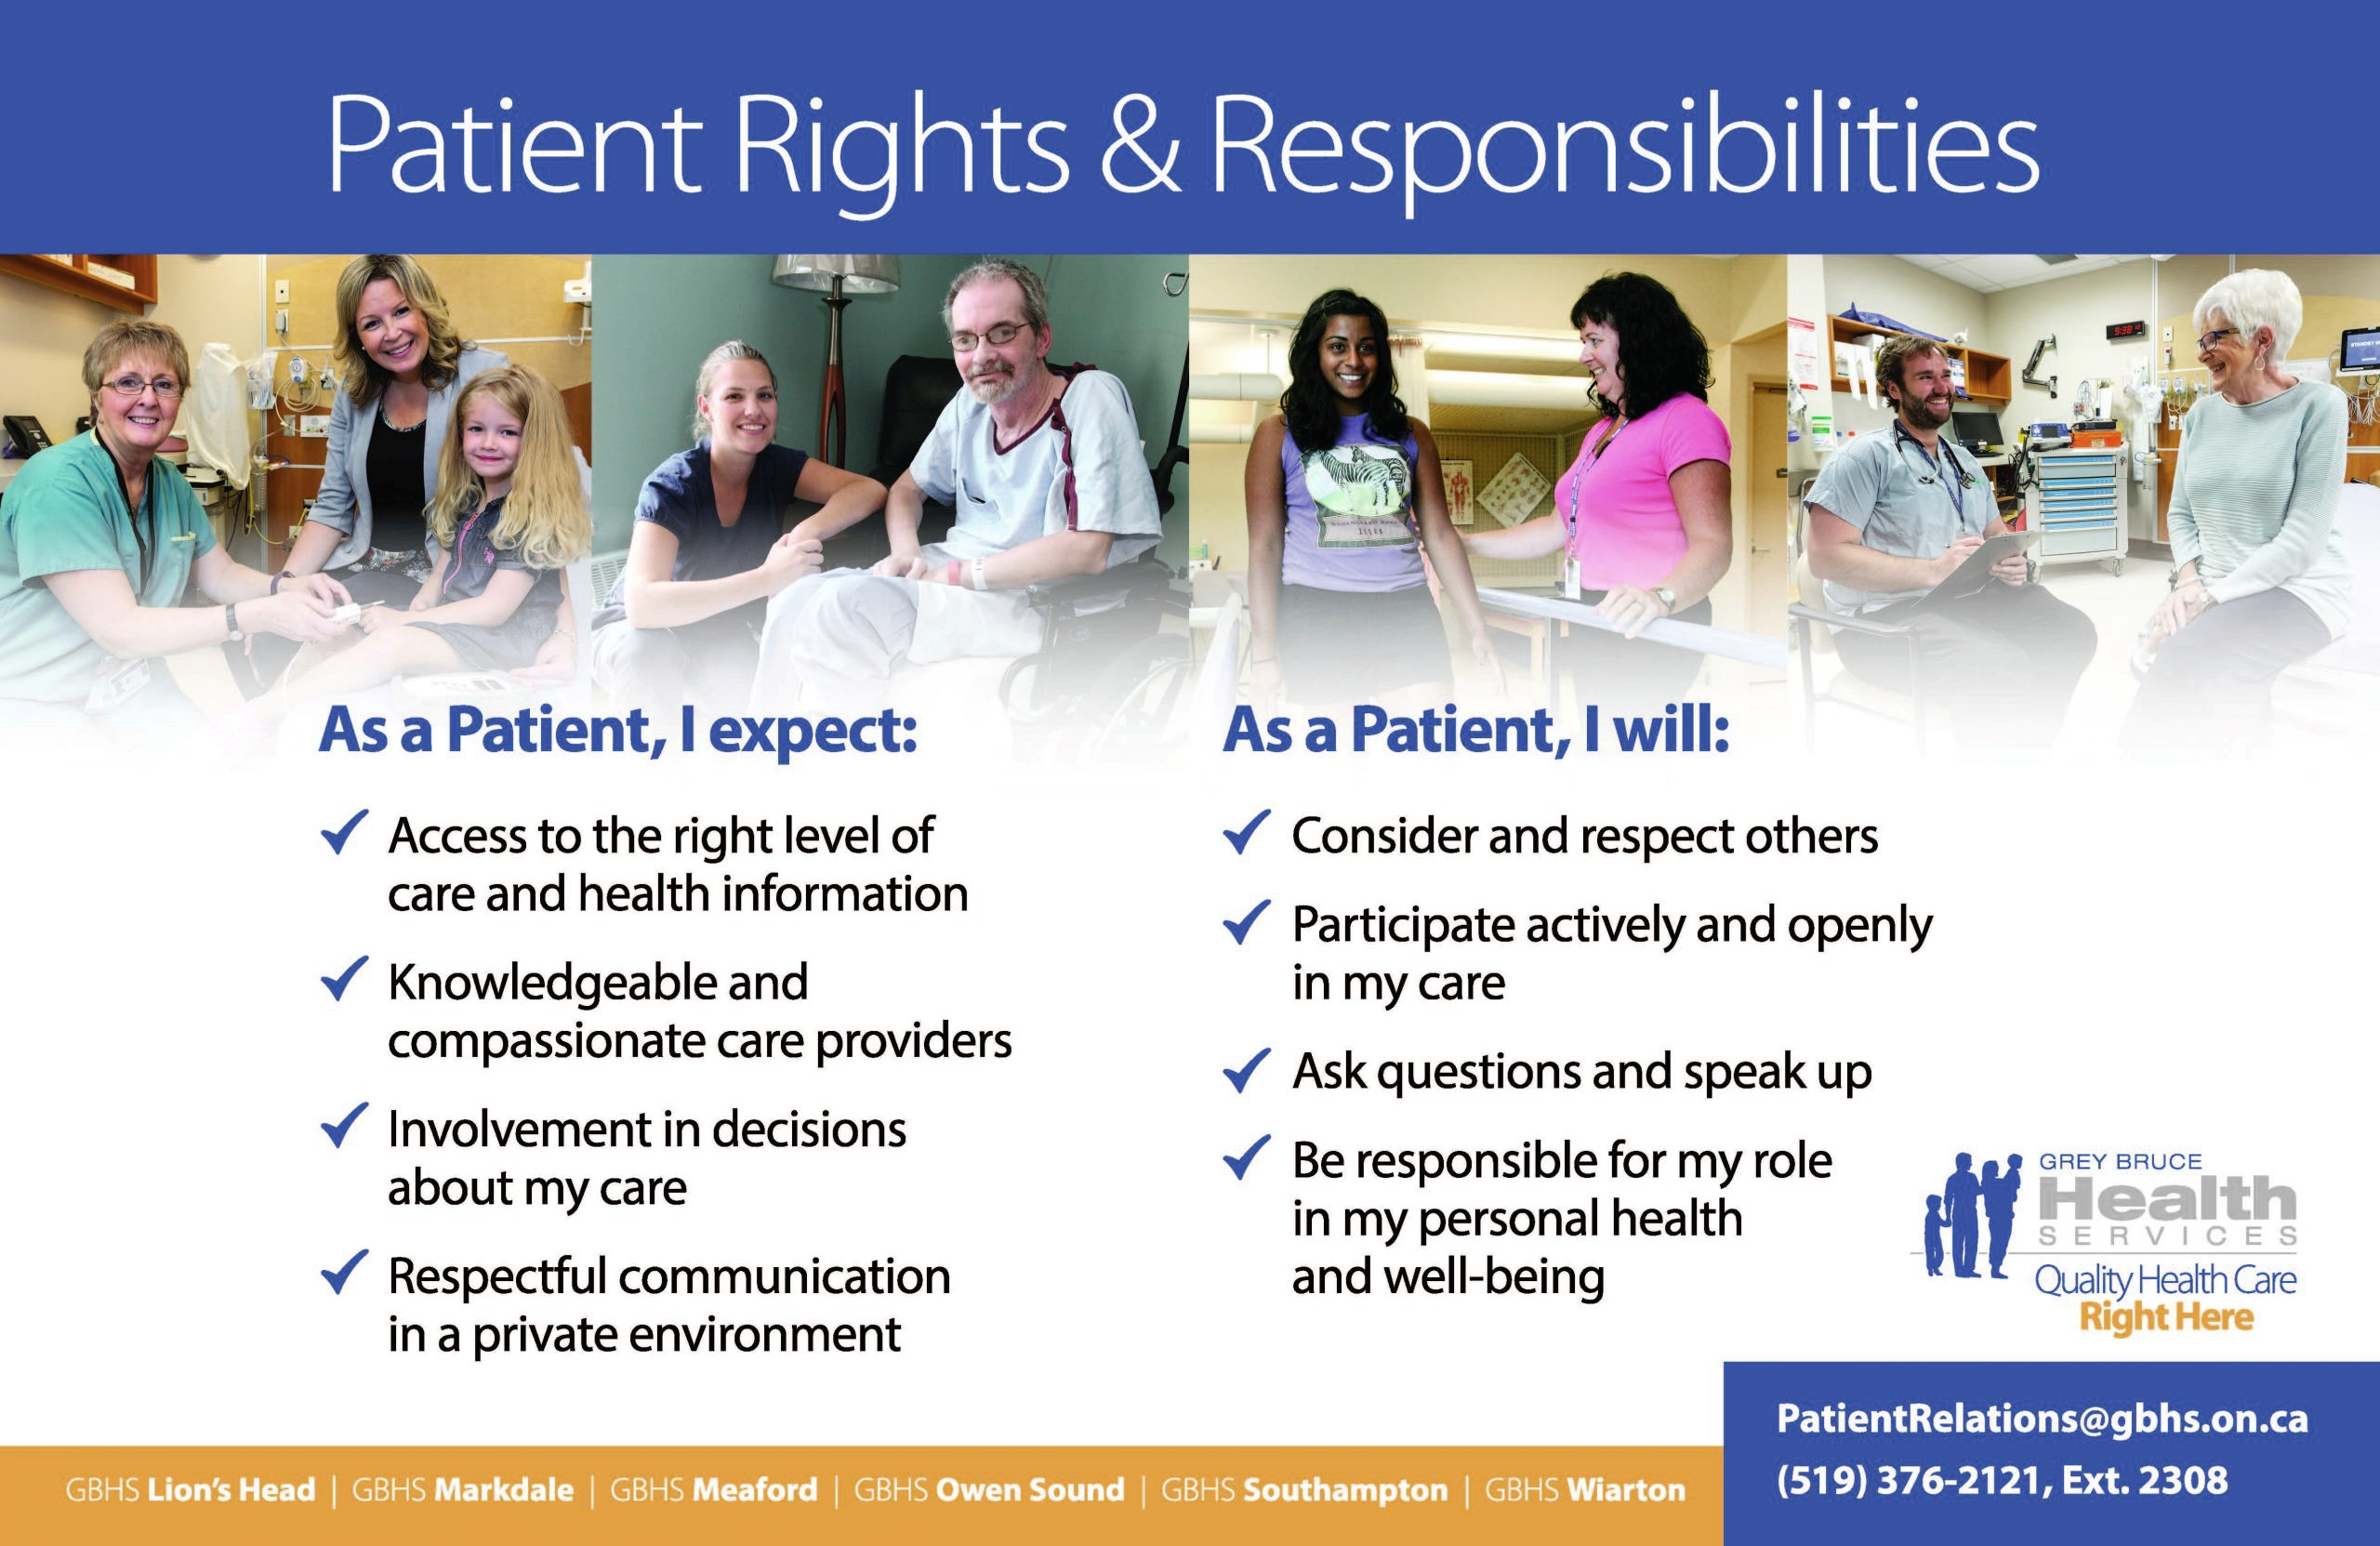 Patient Rights and Responsibilities poster